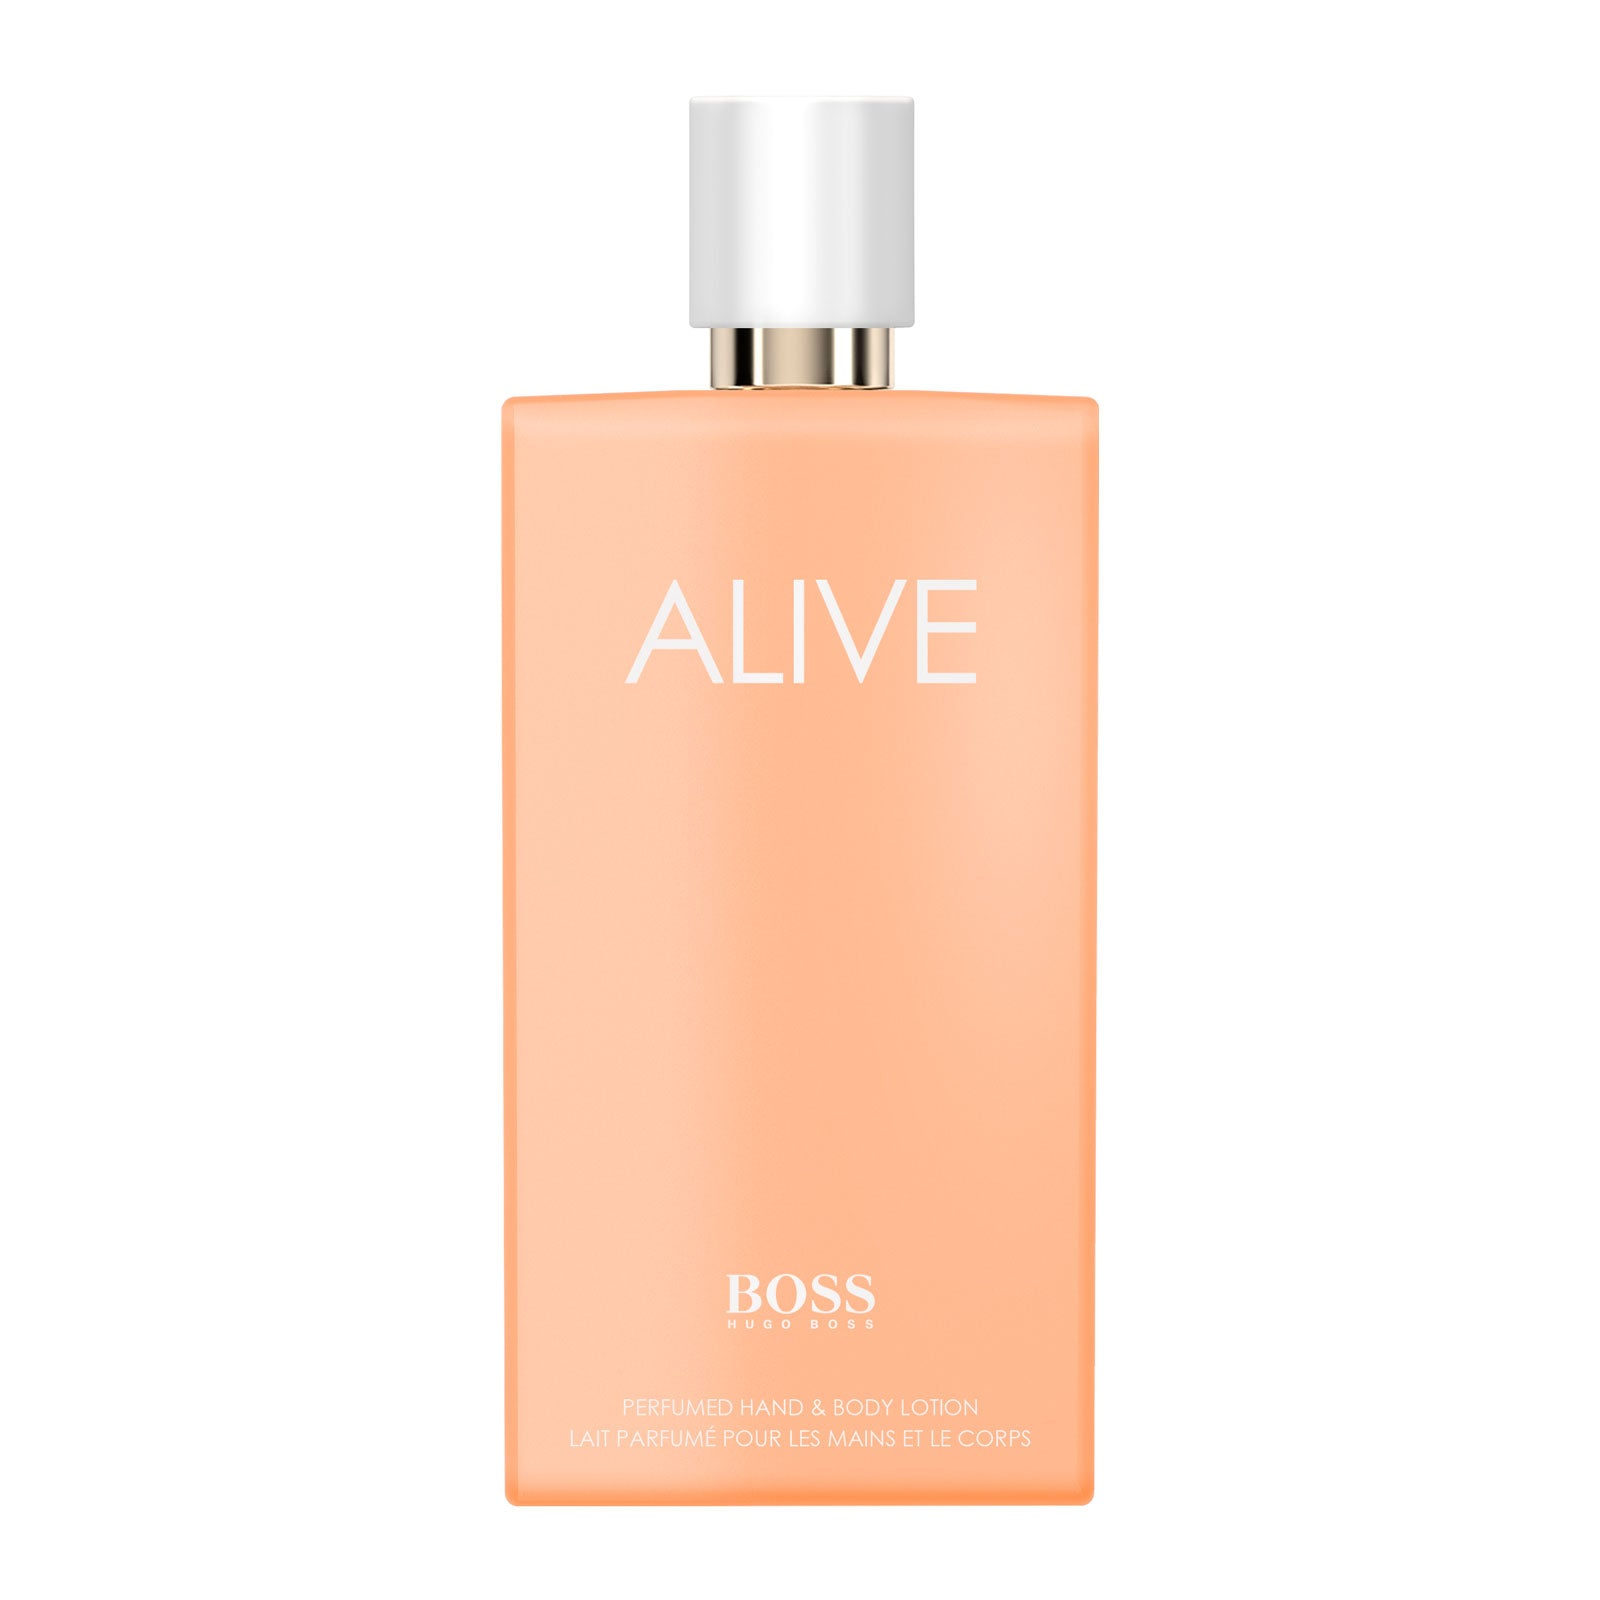 Hugo Boss BOSS Alive Hand & Body Lotion For Women 200ml